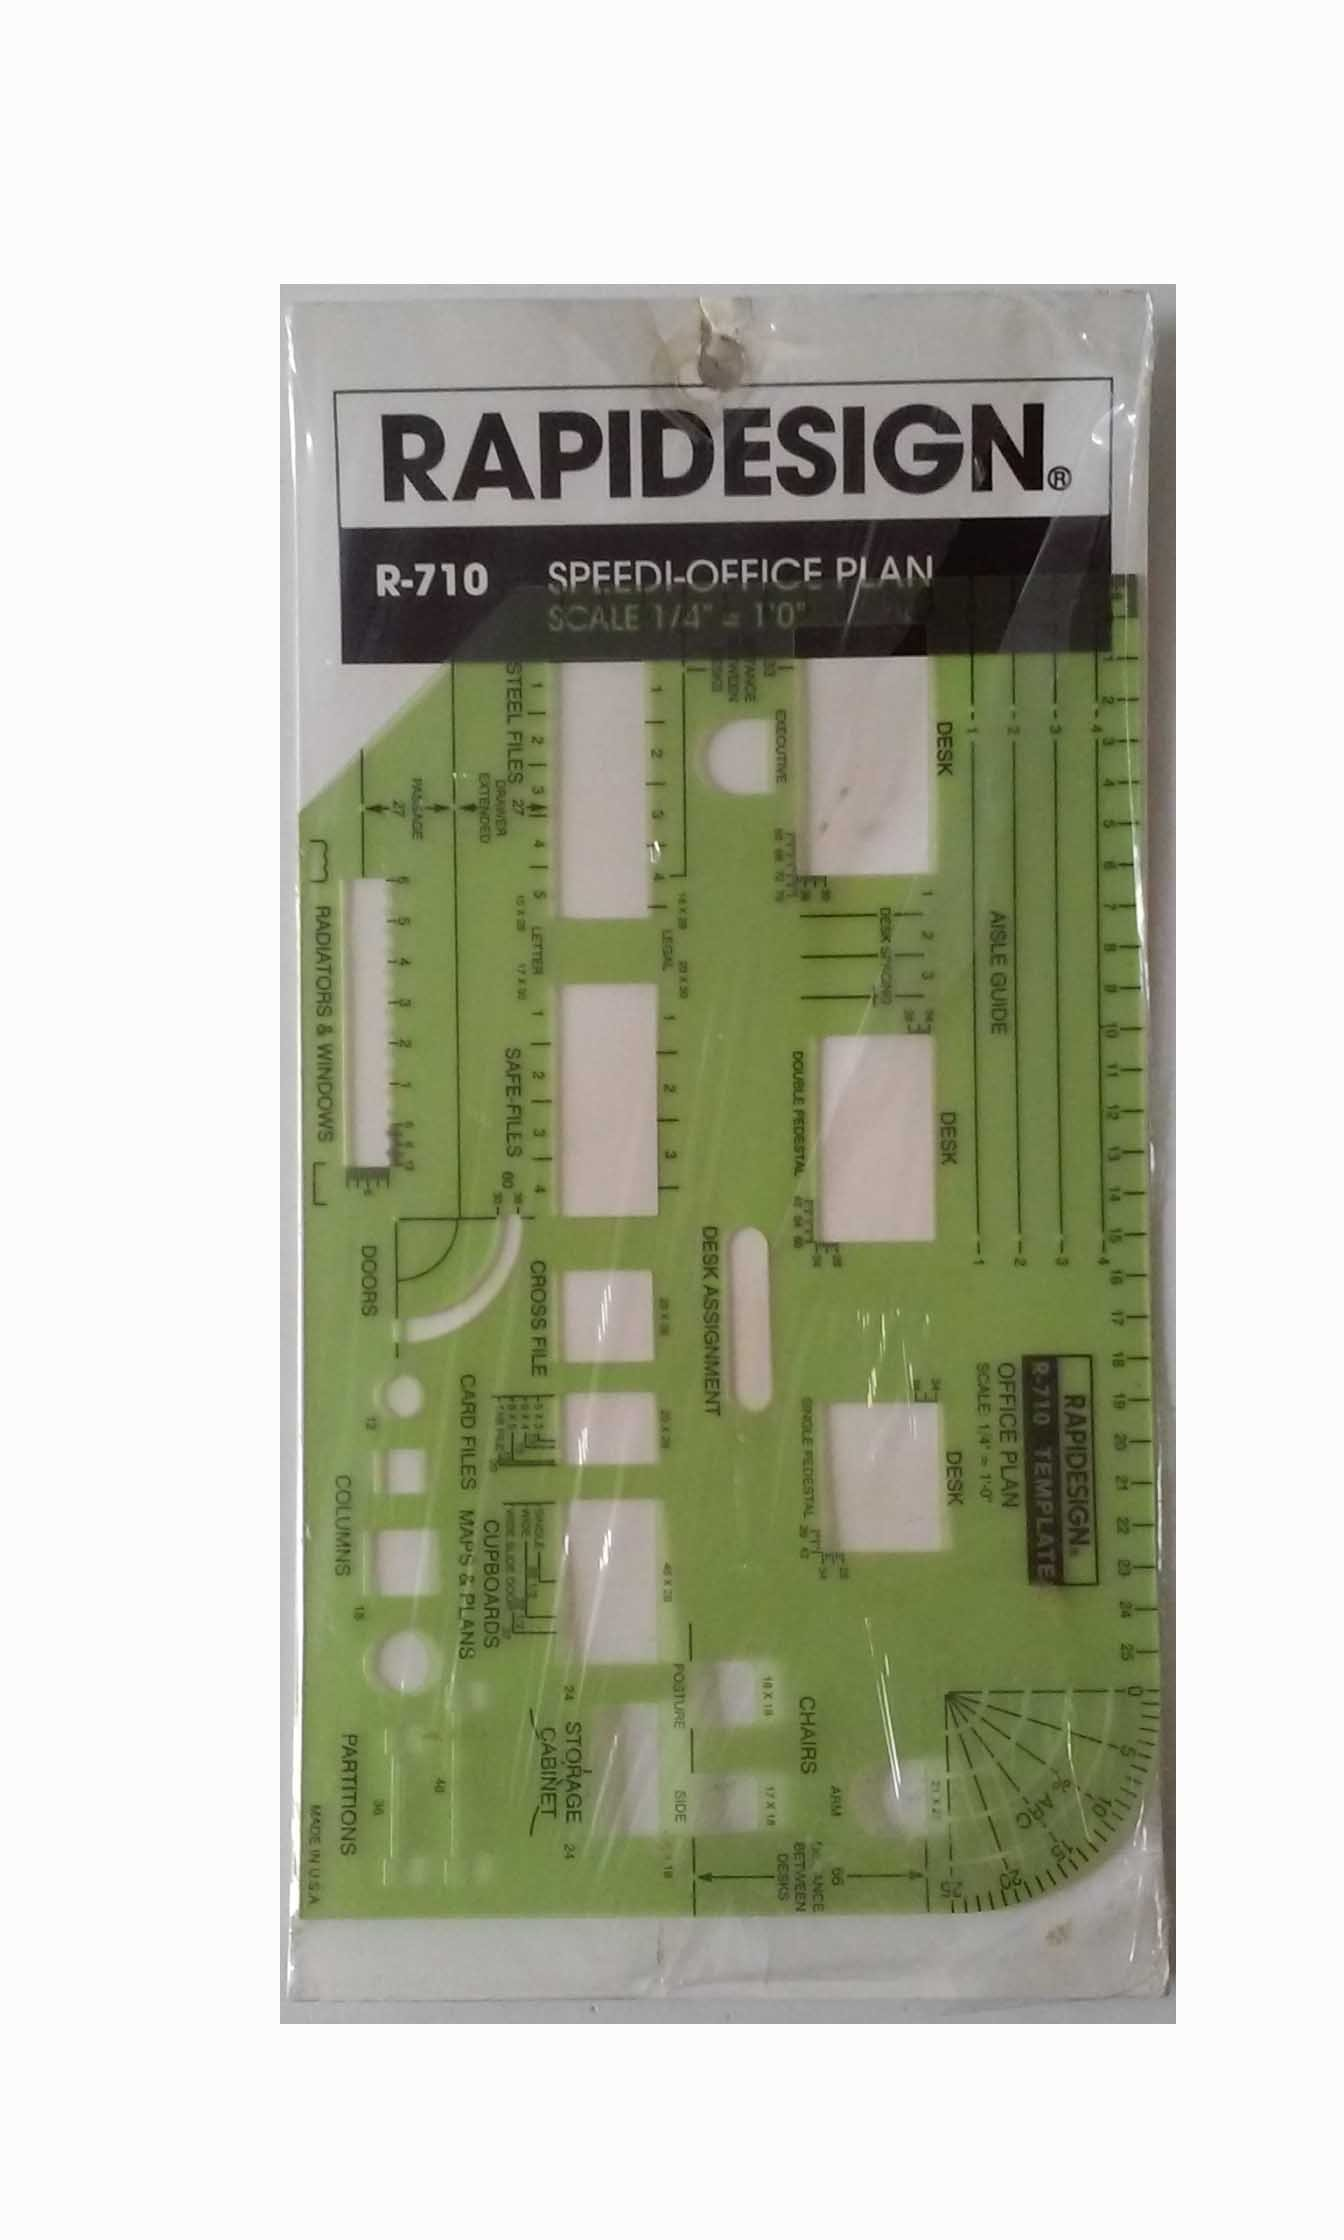 Berol(R) RapiDesign(R), R-710, Speedi-Office Plan, Scale 1/4'' = 1' 0'', 5 1/8'' x 8'', Made in the USA by RAPIDESIGN (Image #2)